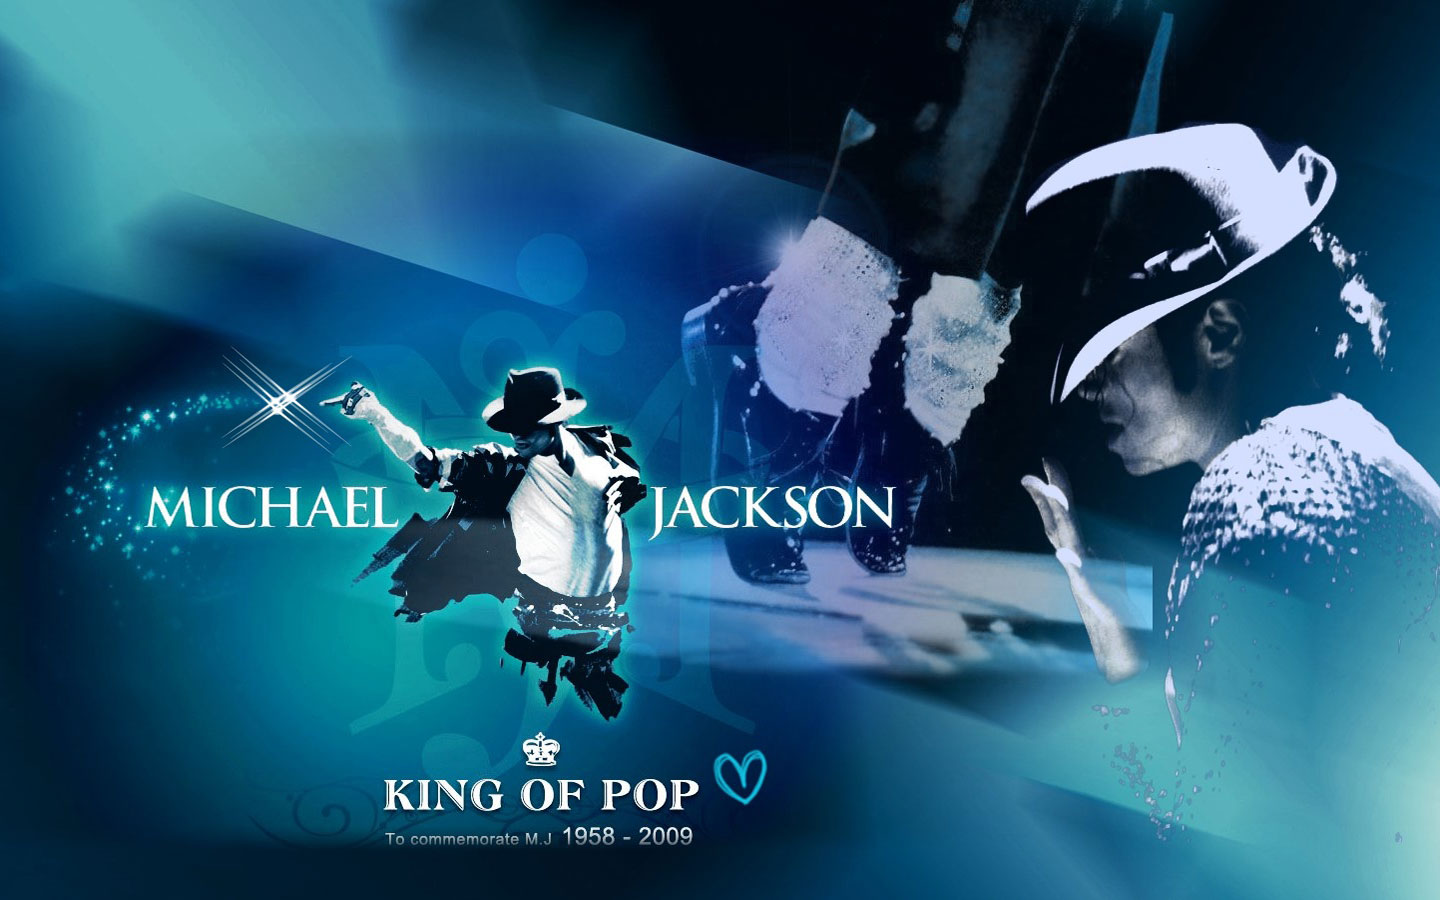 michael jackson wallpaper and background image | 1440x900 | id:491323